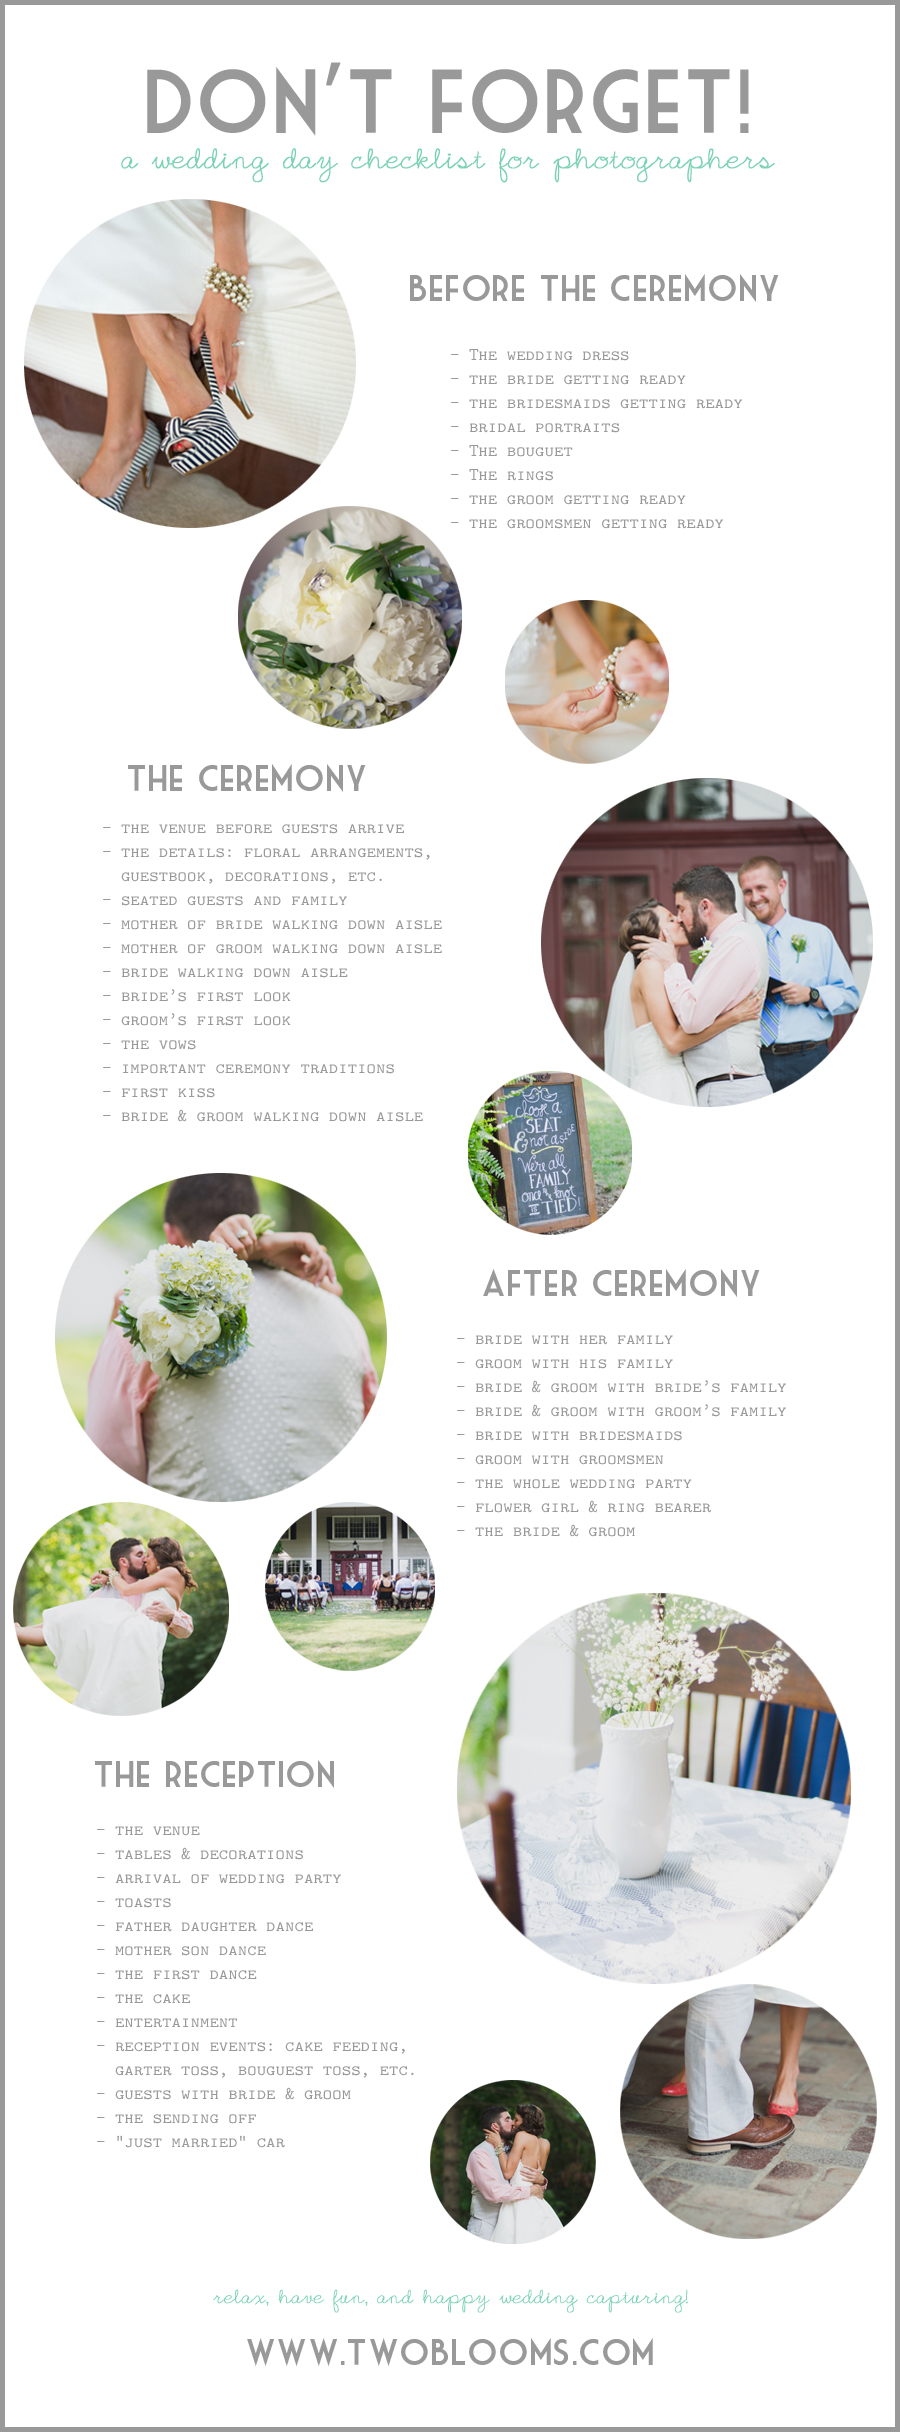 wedding photo checklist